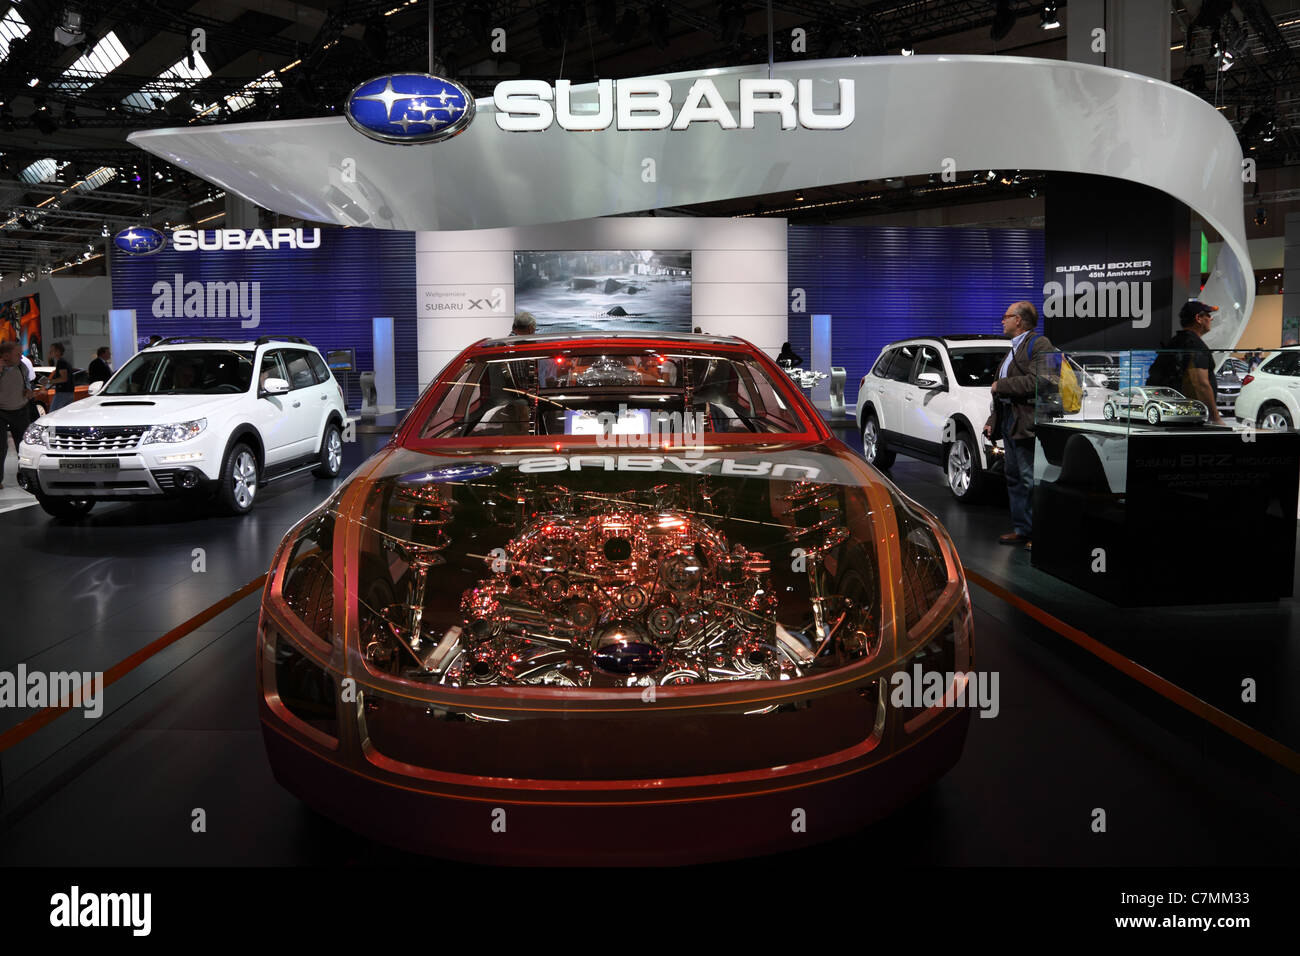 Japanese car manufacturer Subaru at the 64th IAA (Internationale Automobil Ausstellung) - Stock Image